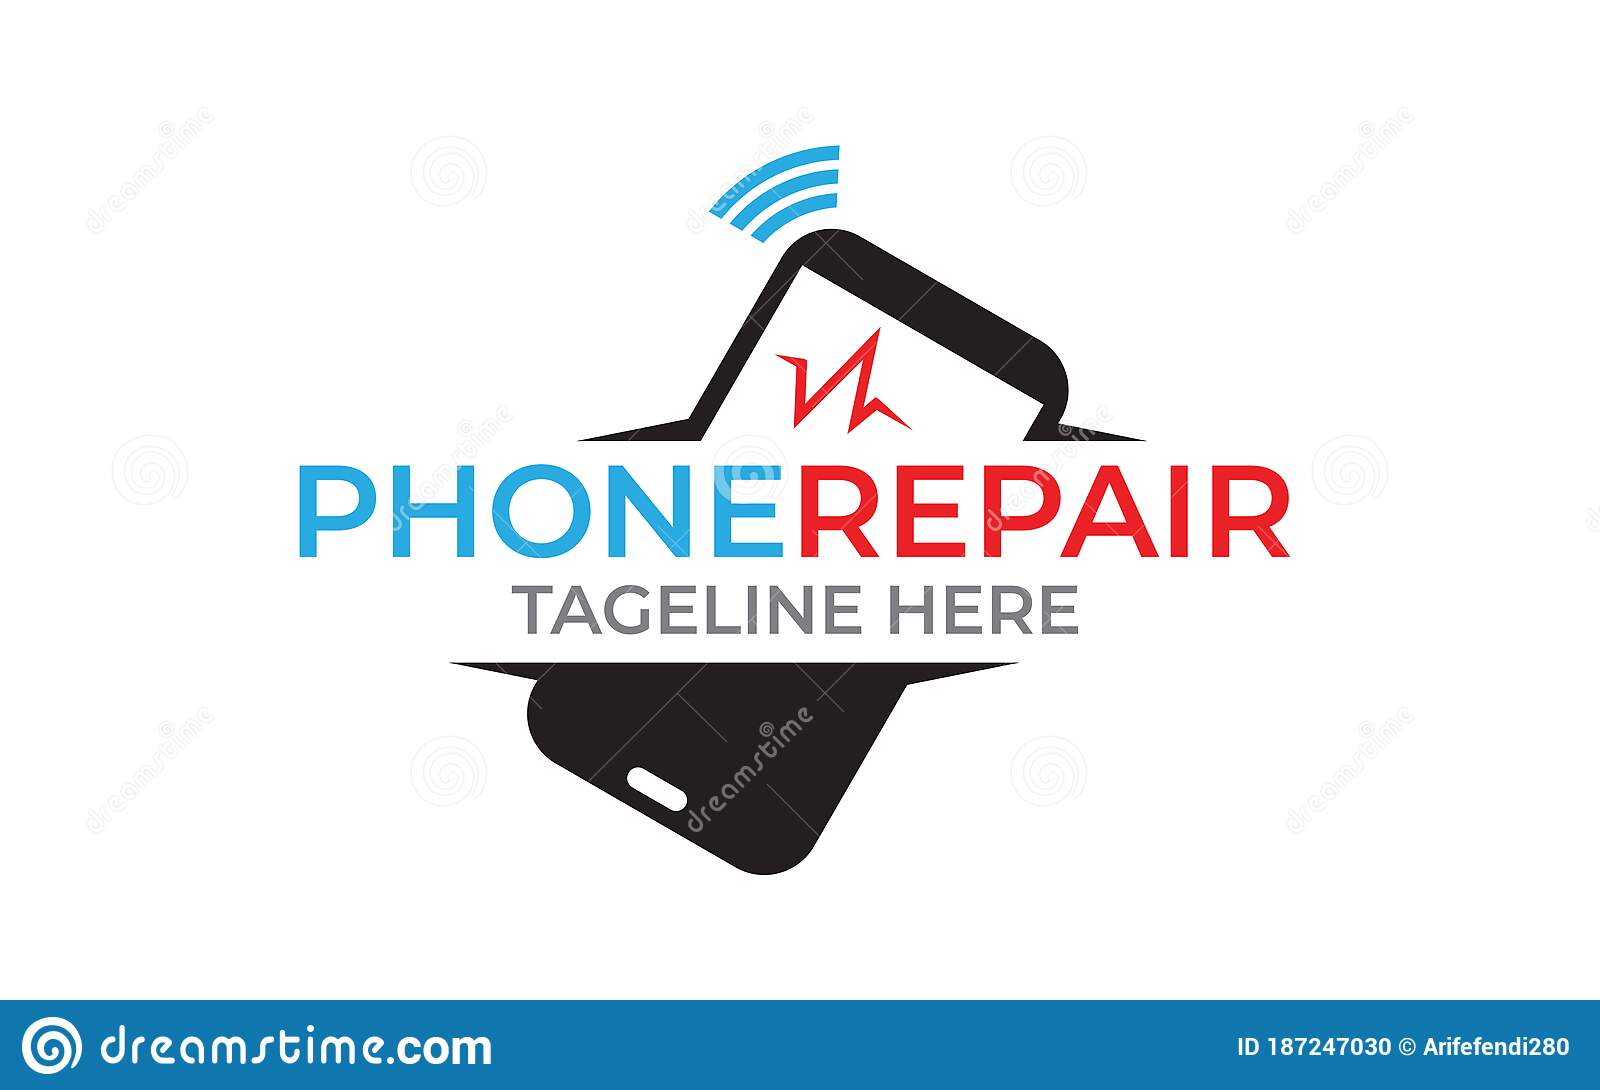 Illustration Of Phone Repair Logo Can Use For Mobile Shop Stock Vector Illustration Of Cell Geek 187247030